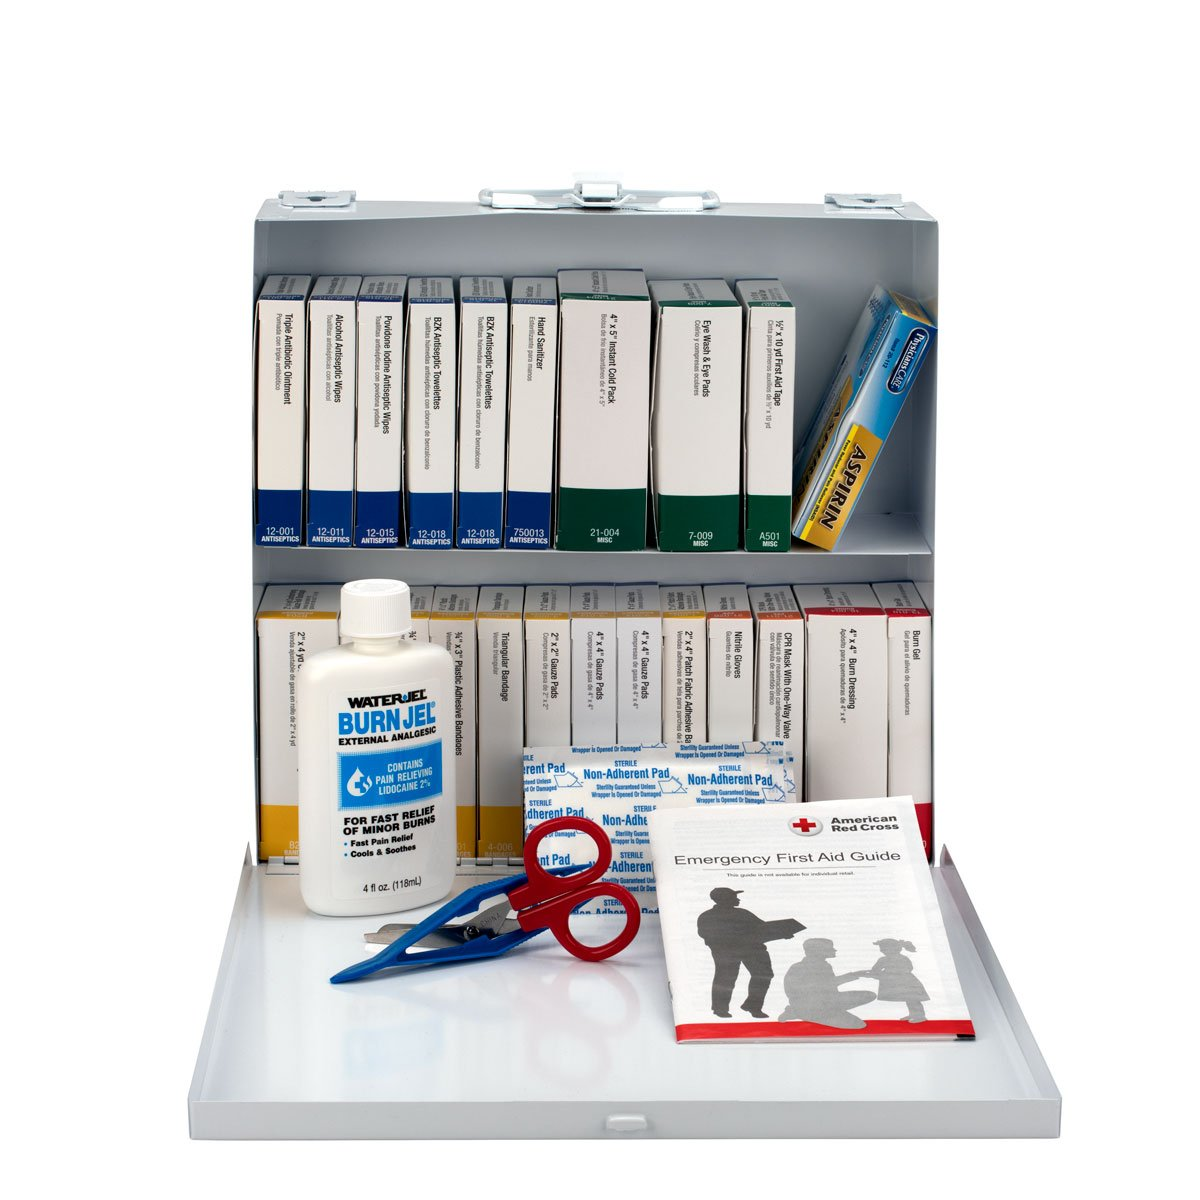 75 Person Restaurant First Aid Kit, Metal Case - OSHA Compliant Emergency Kit Trauma Kit First Aid Kits for Restaurants